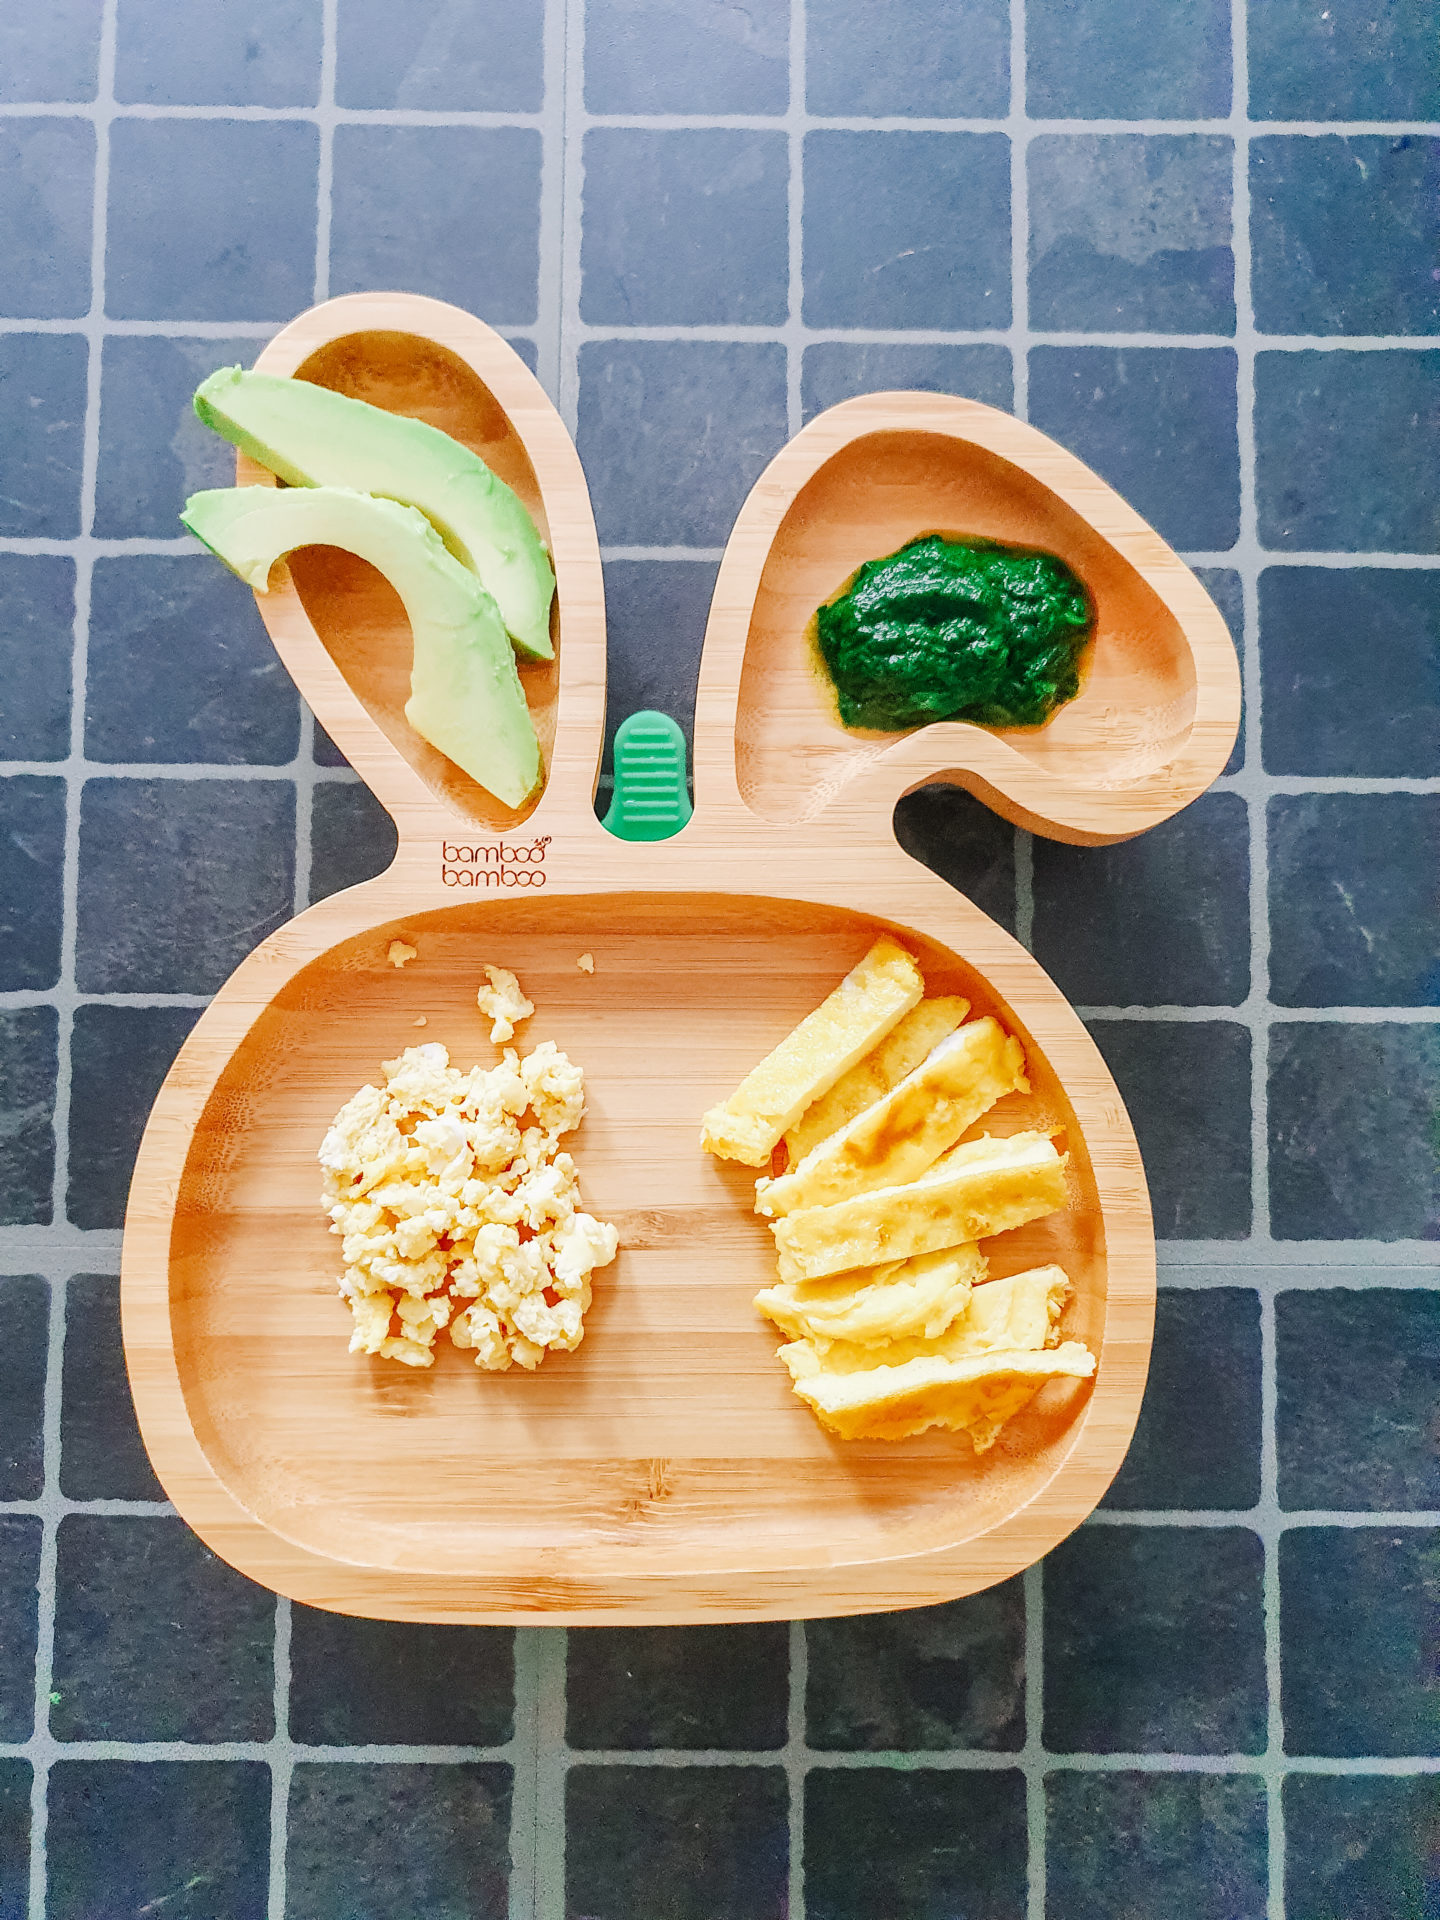 Baby lunch plate